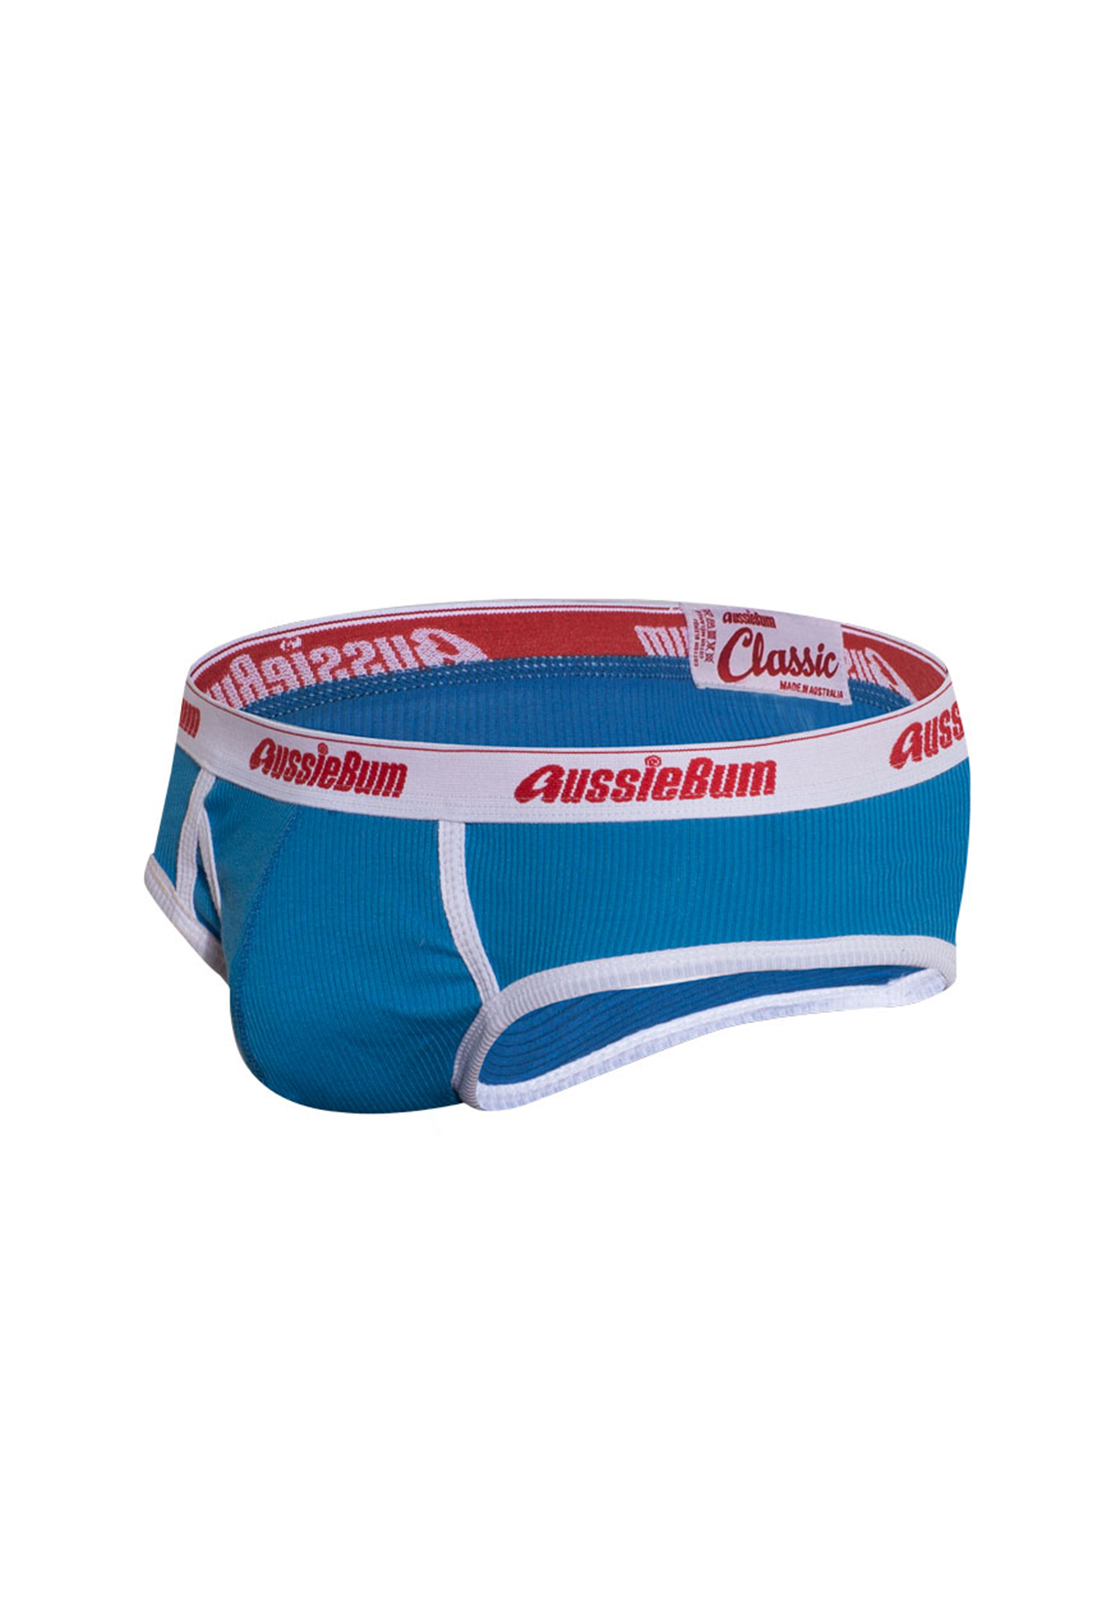 Aussiebum pacific XL Brief Classic Original